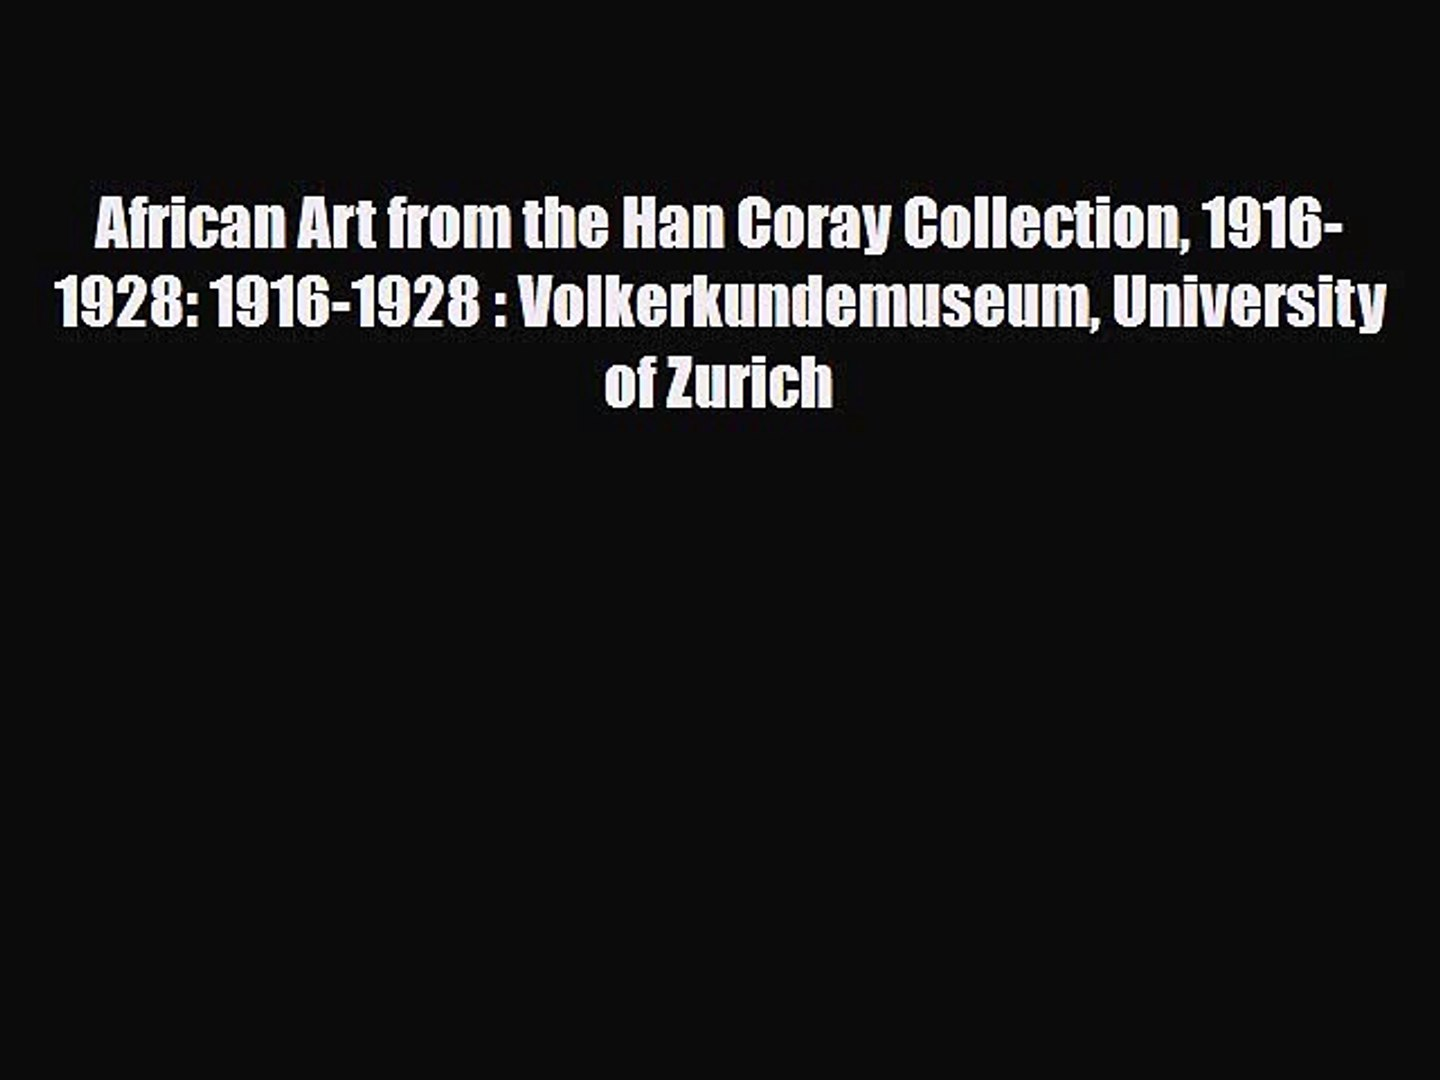 [PDF] African Art from the Han Coray Collection 1916-1928: 1916-1928 : Volkerkundemuseum University